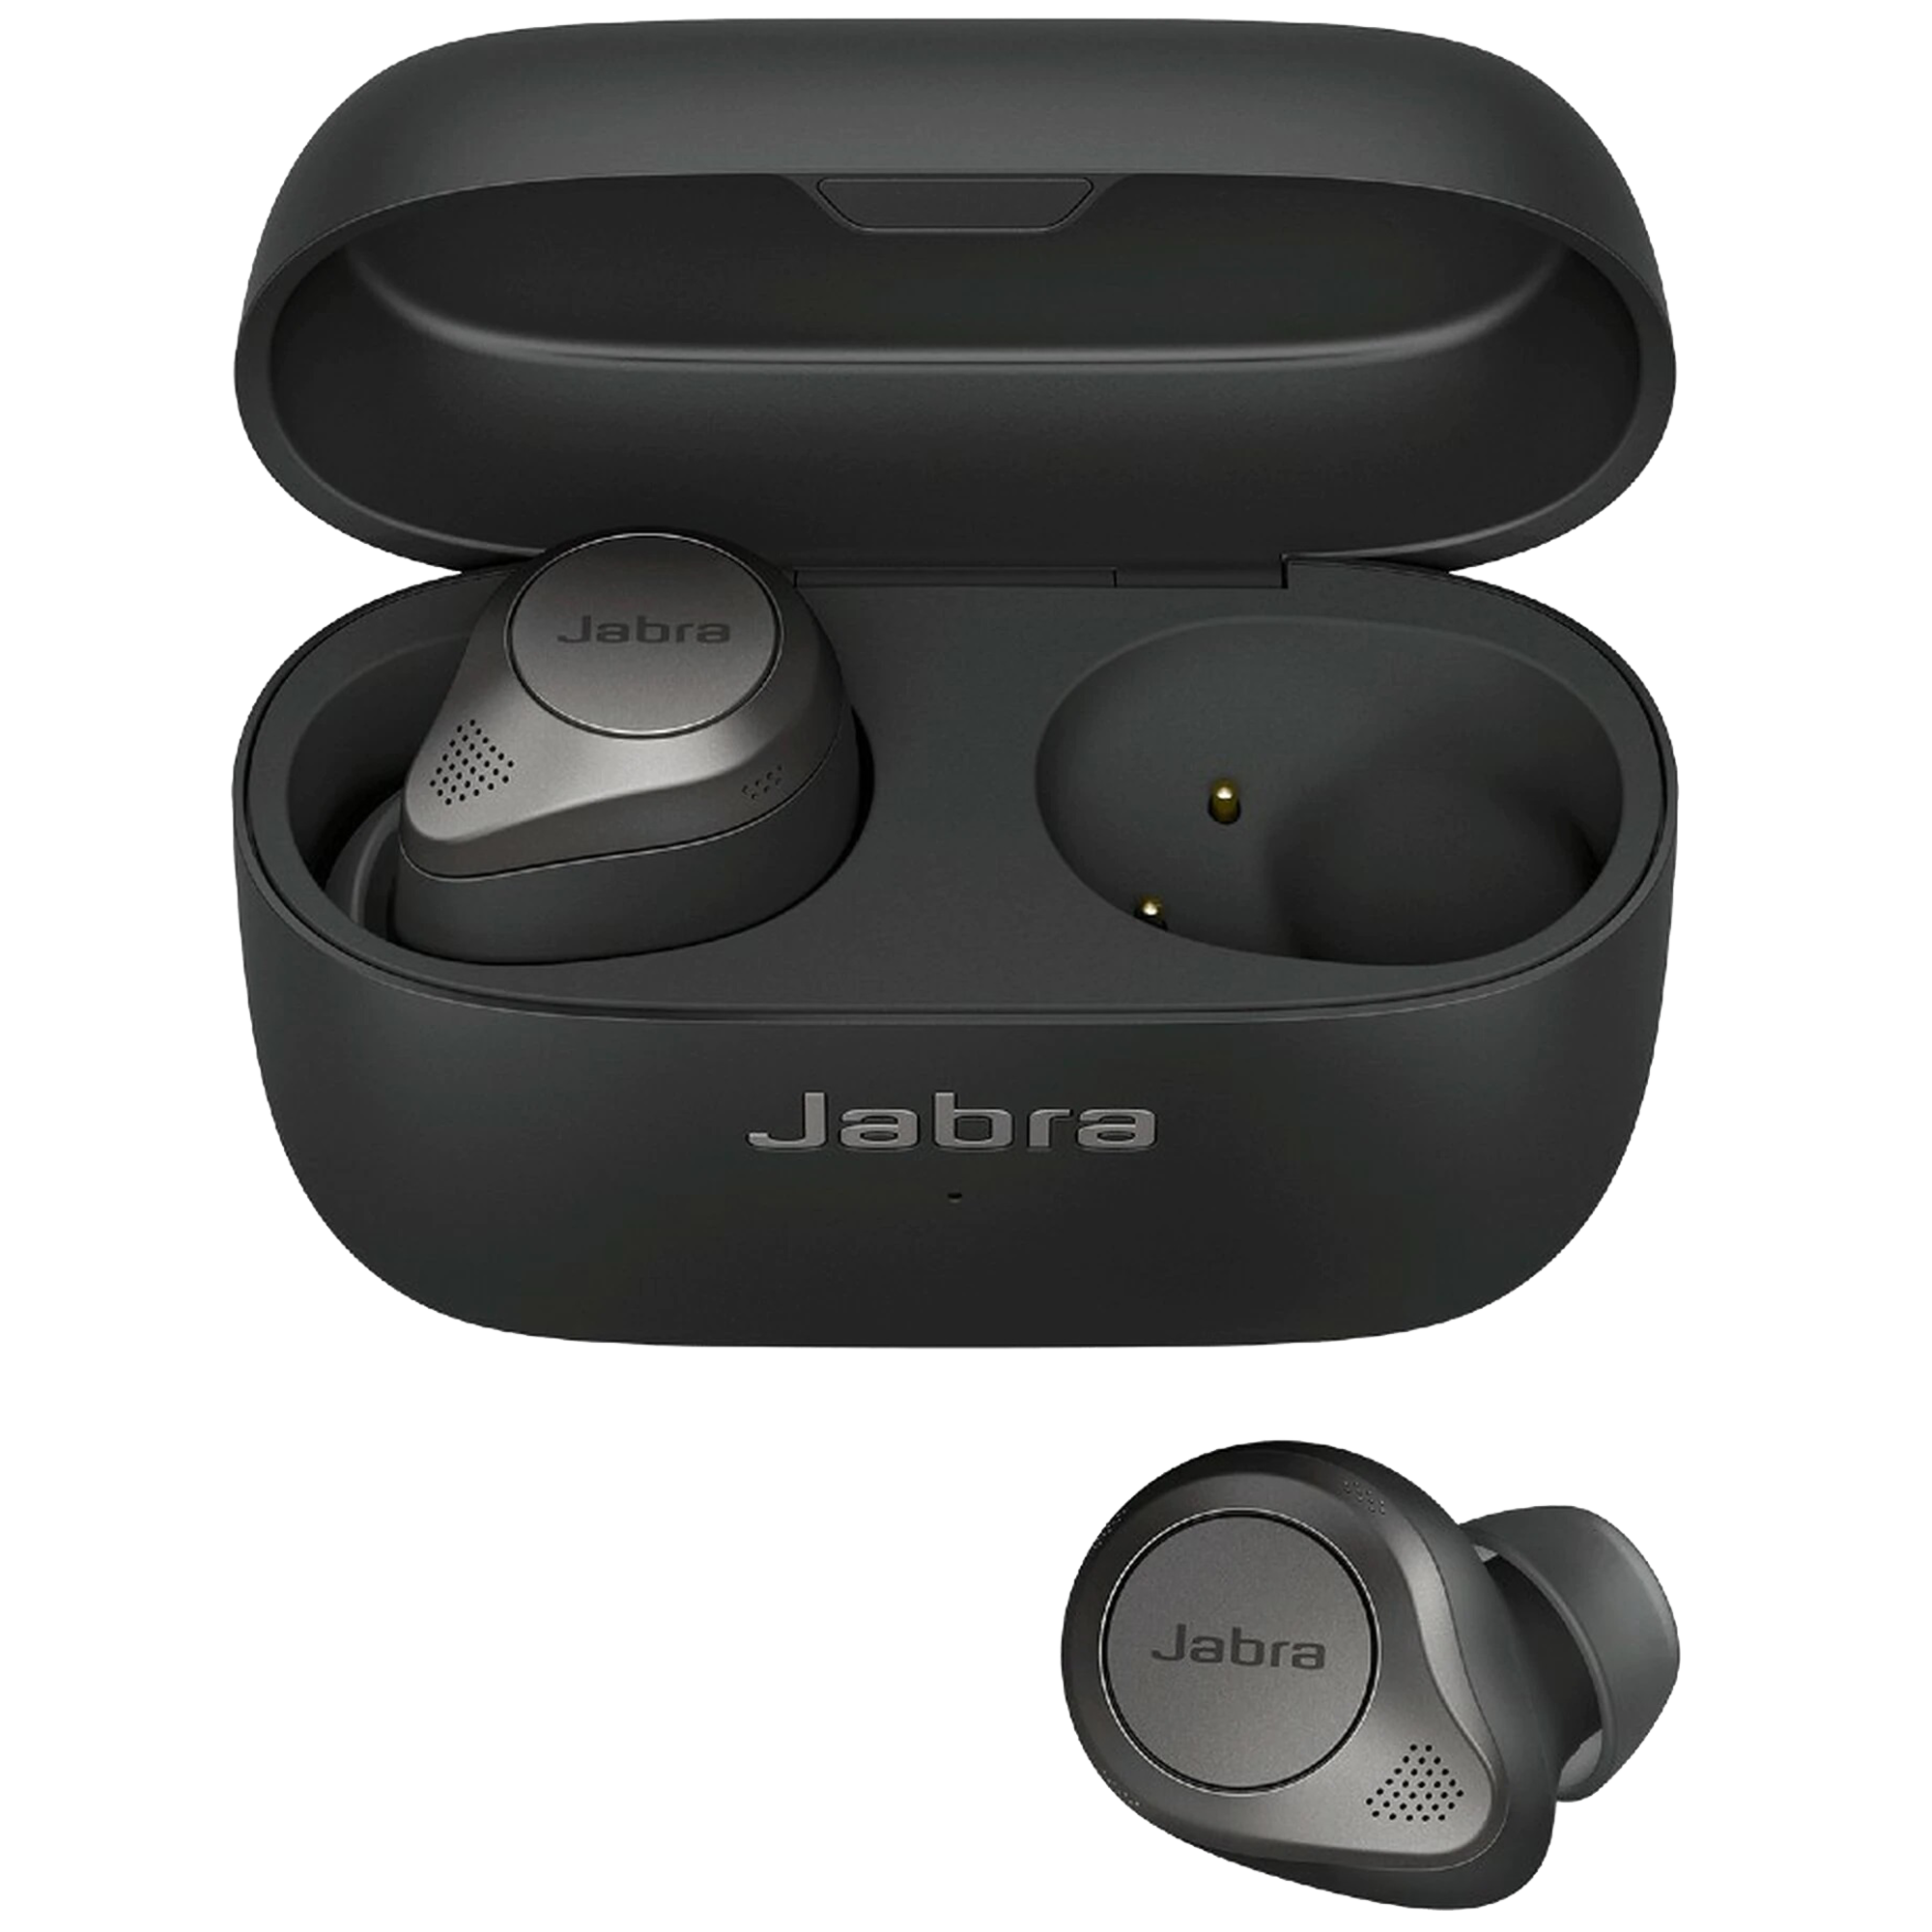 Jabra Elite 85t In-Ear Active Noise Cancellation Truly Wireless Earbuds with Mic (Bluetooth 5.1, Adjustable Sound, 100-99190000-40, Titanium Black)_1